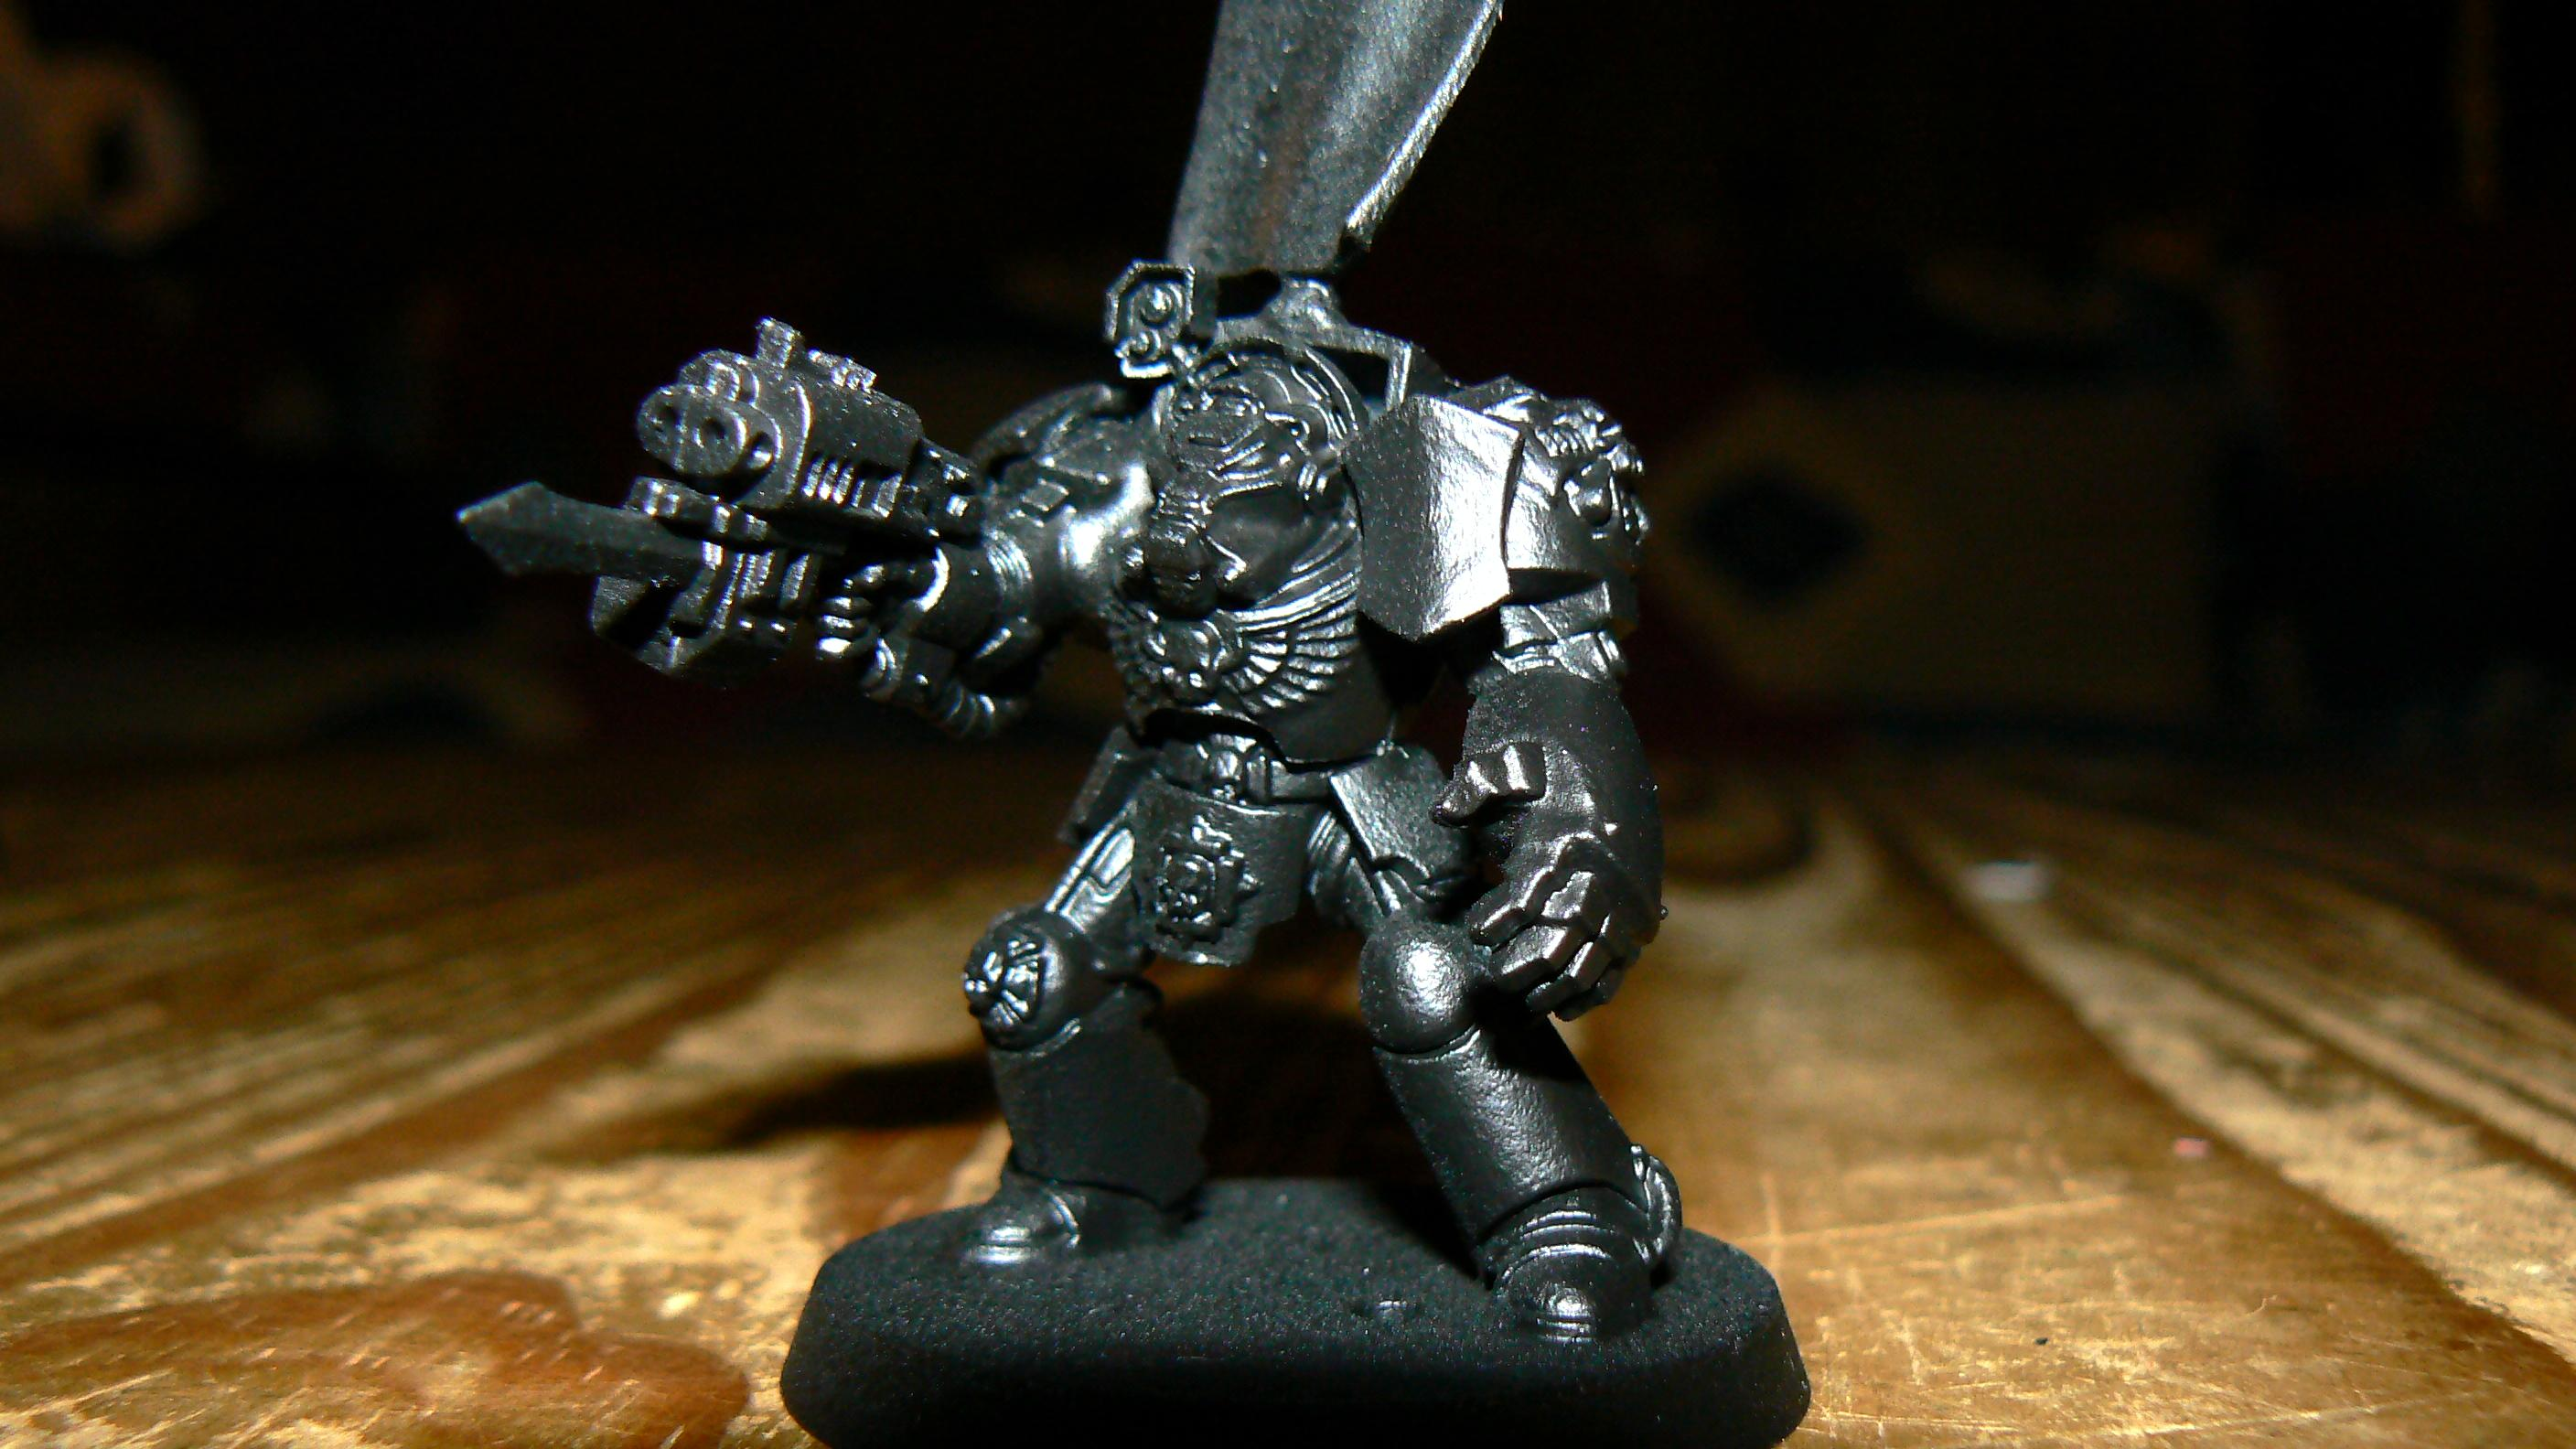 Banner, Dark Angels, Deathwing, Peacemakers, Penitent Avengers, Primered, Storm Bolter, Terminator Armor